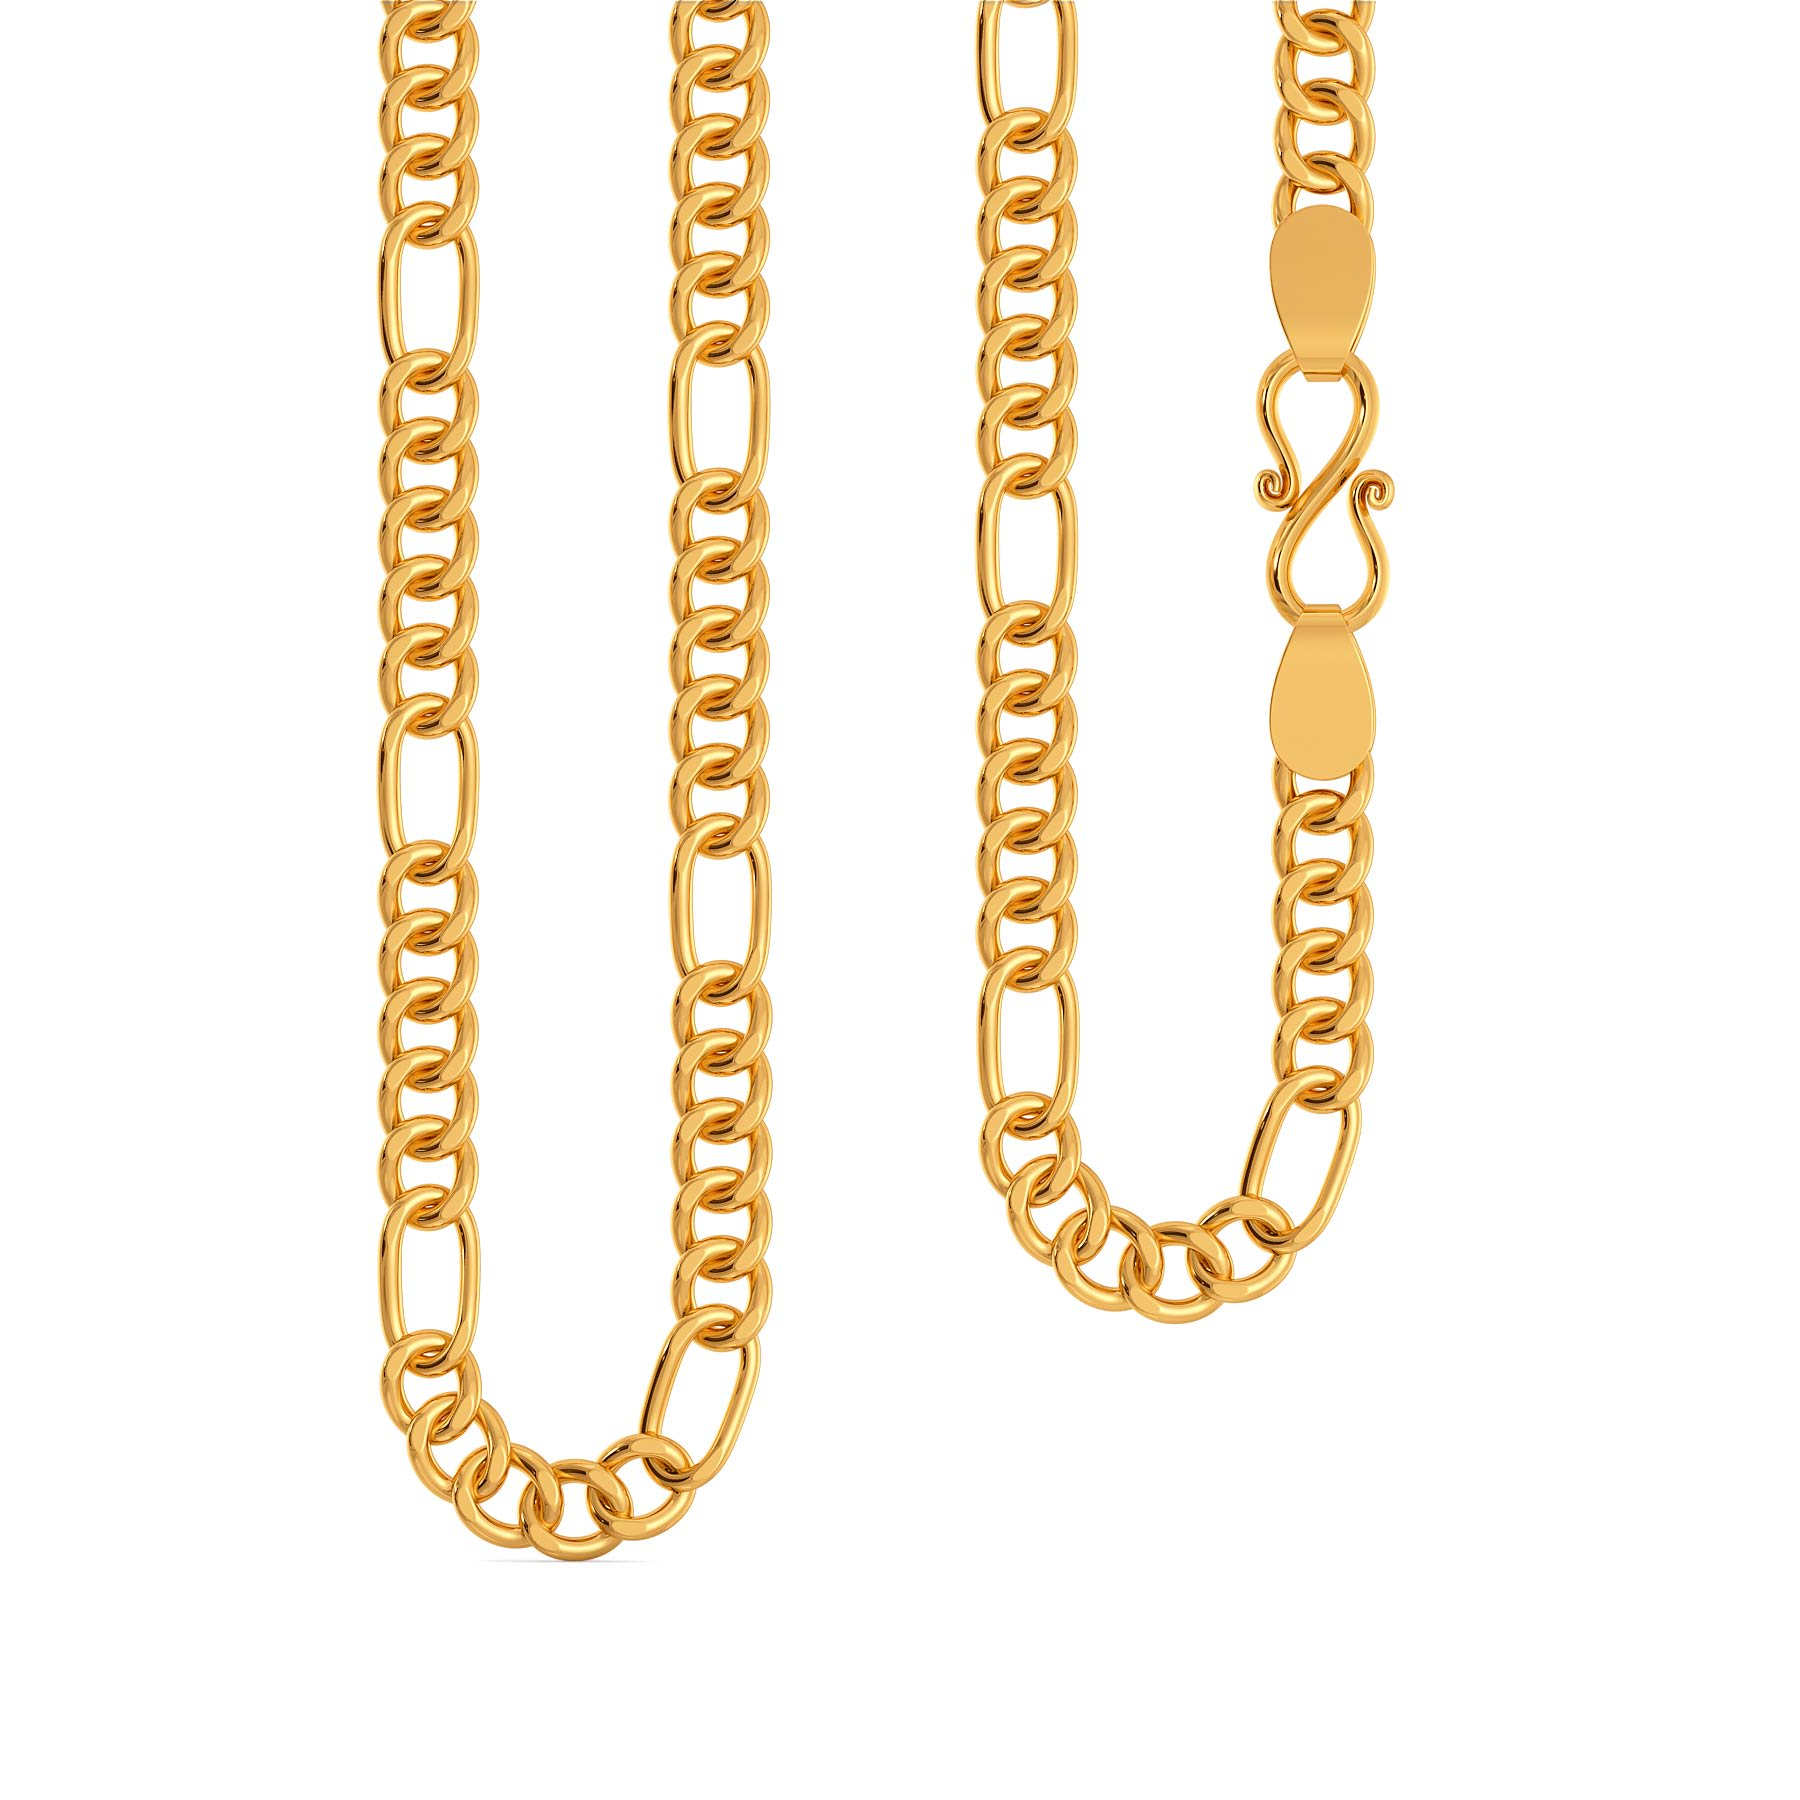 22kt Penta Figaro Chain Gold Chains